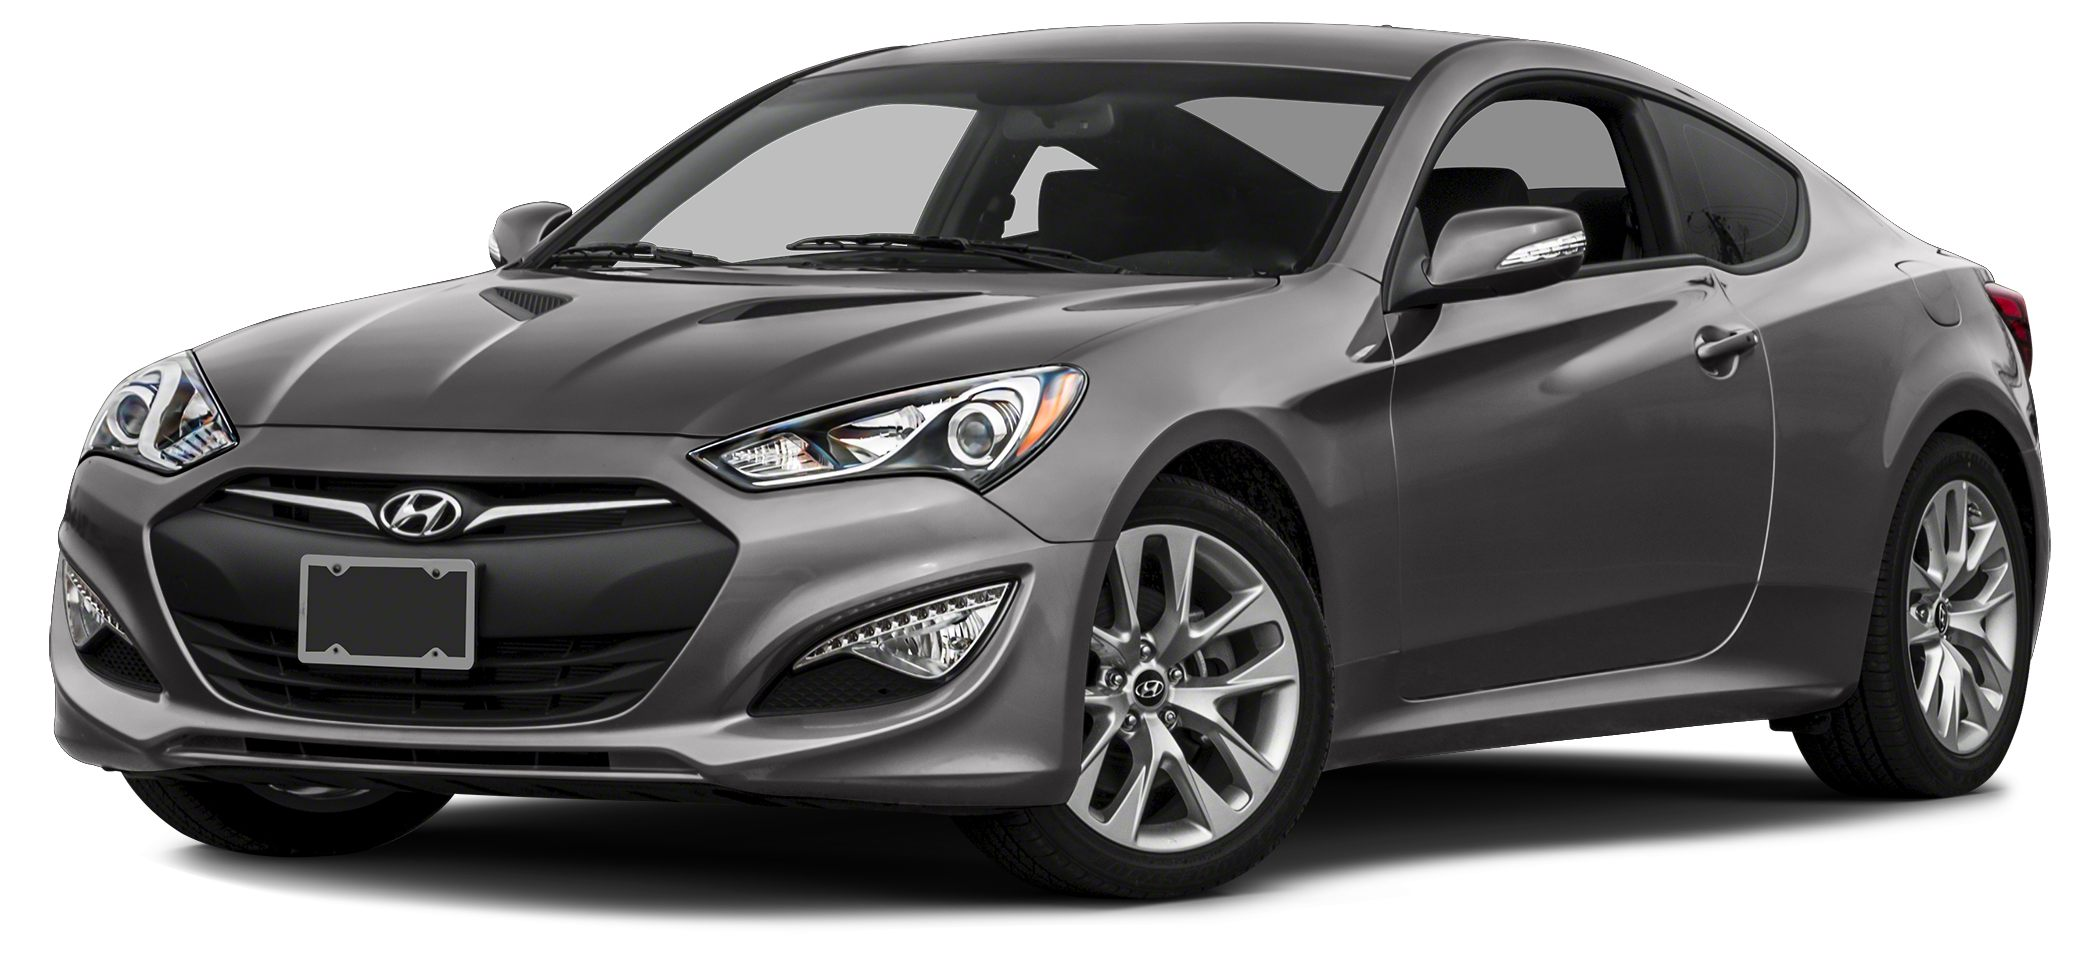 2016 Hyundai Genesis Coupe 38 The Our Cost Price reflects all applicable manufacturer rebates and